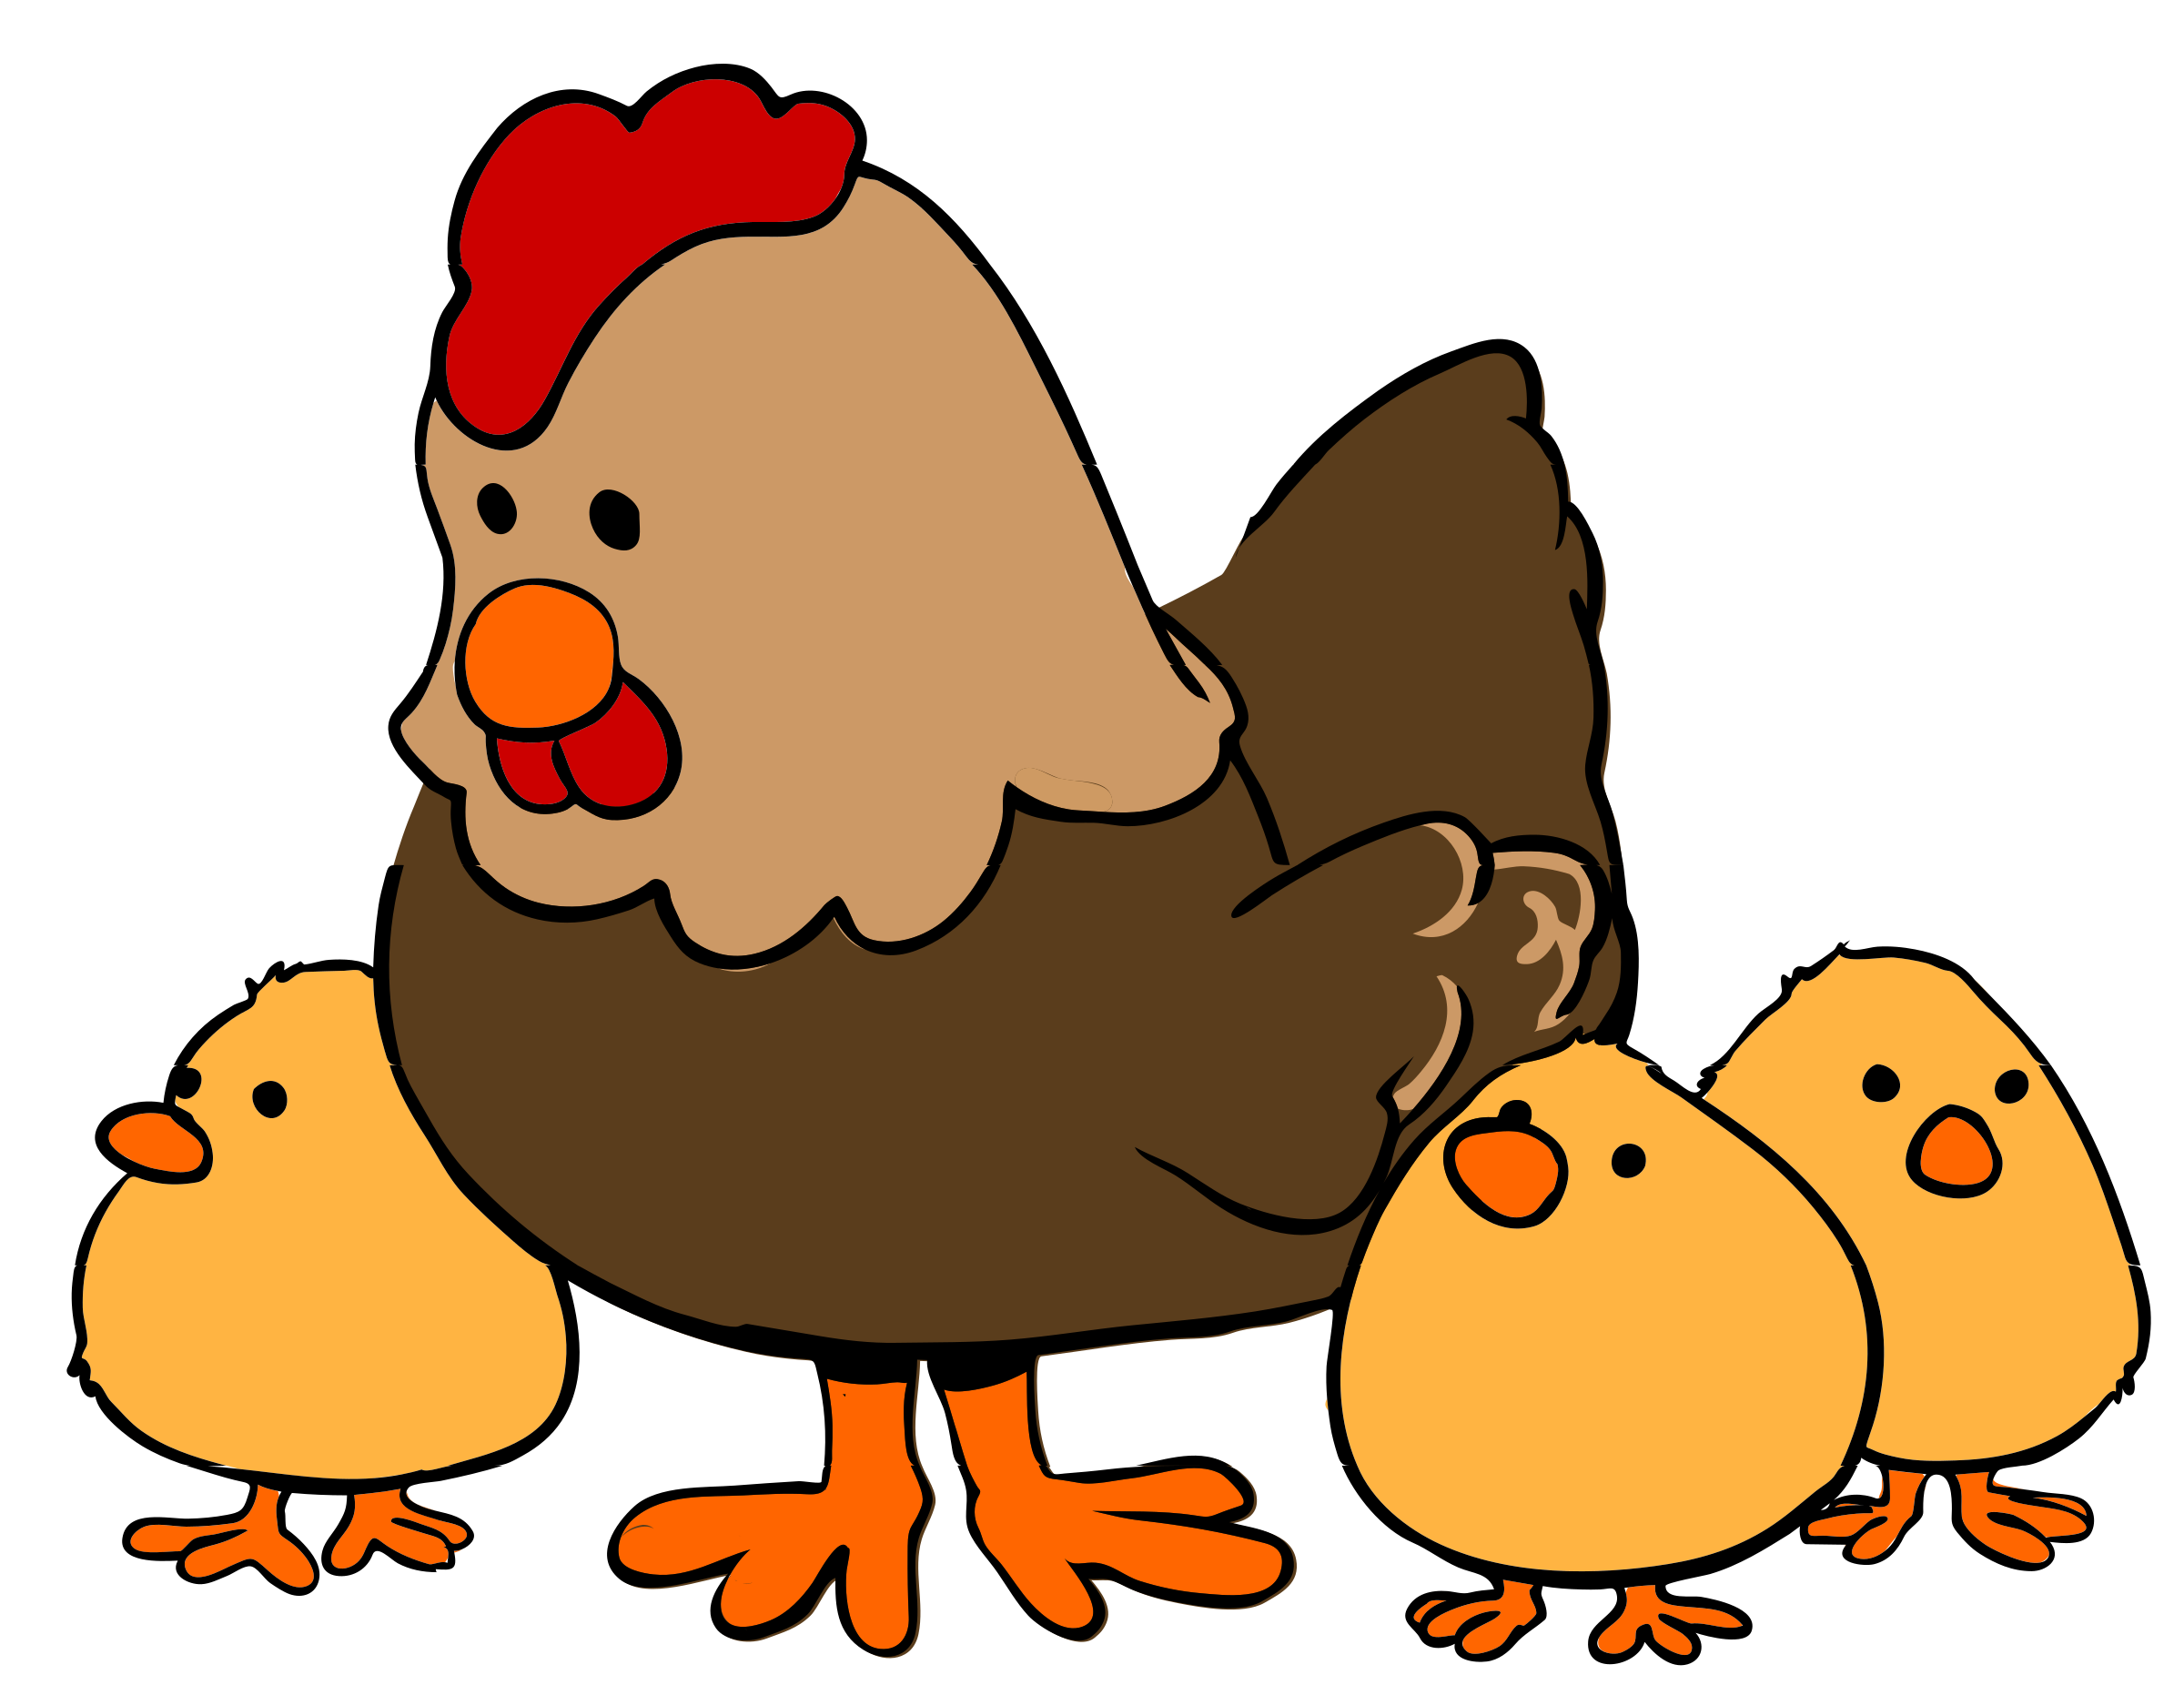 Hen and chicks cartoon. Hippie clipart class esl